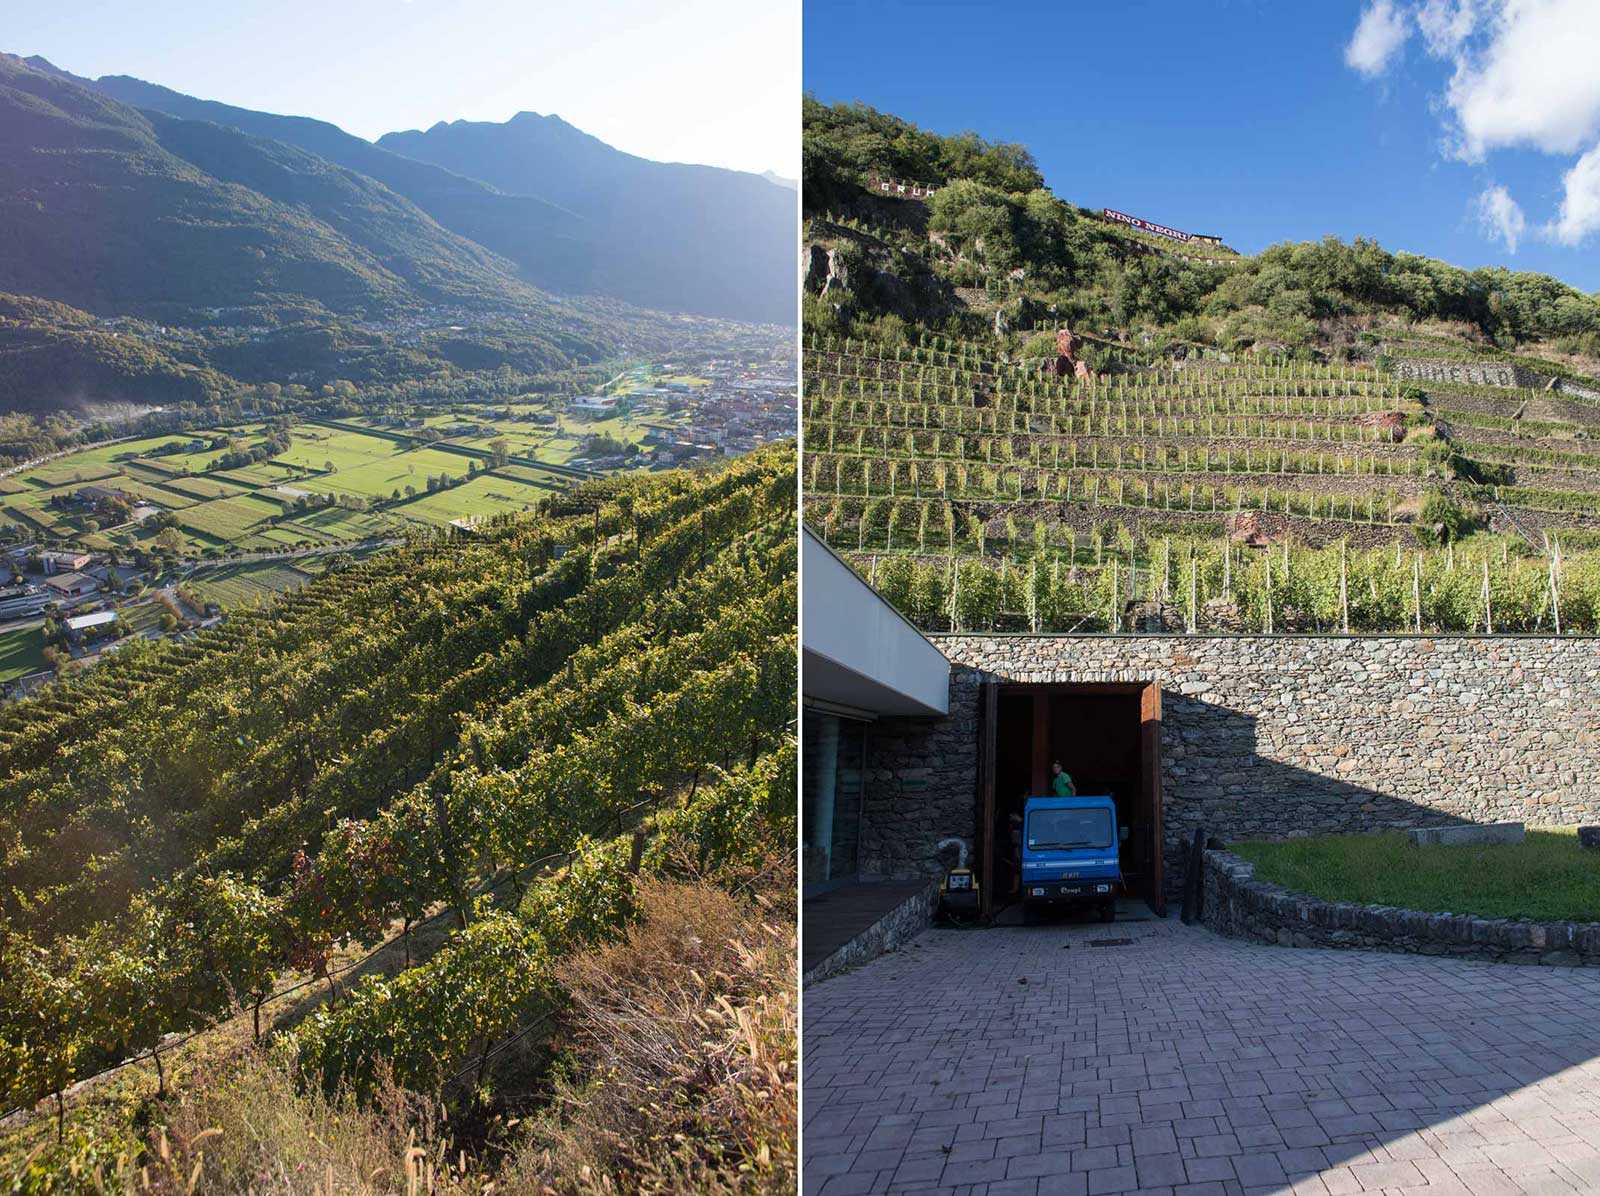 Multiple views of the Rocca de Piro vineyard and the ARPEPE winery. ©Kevin Day/Opening a Bottle